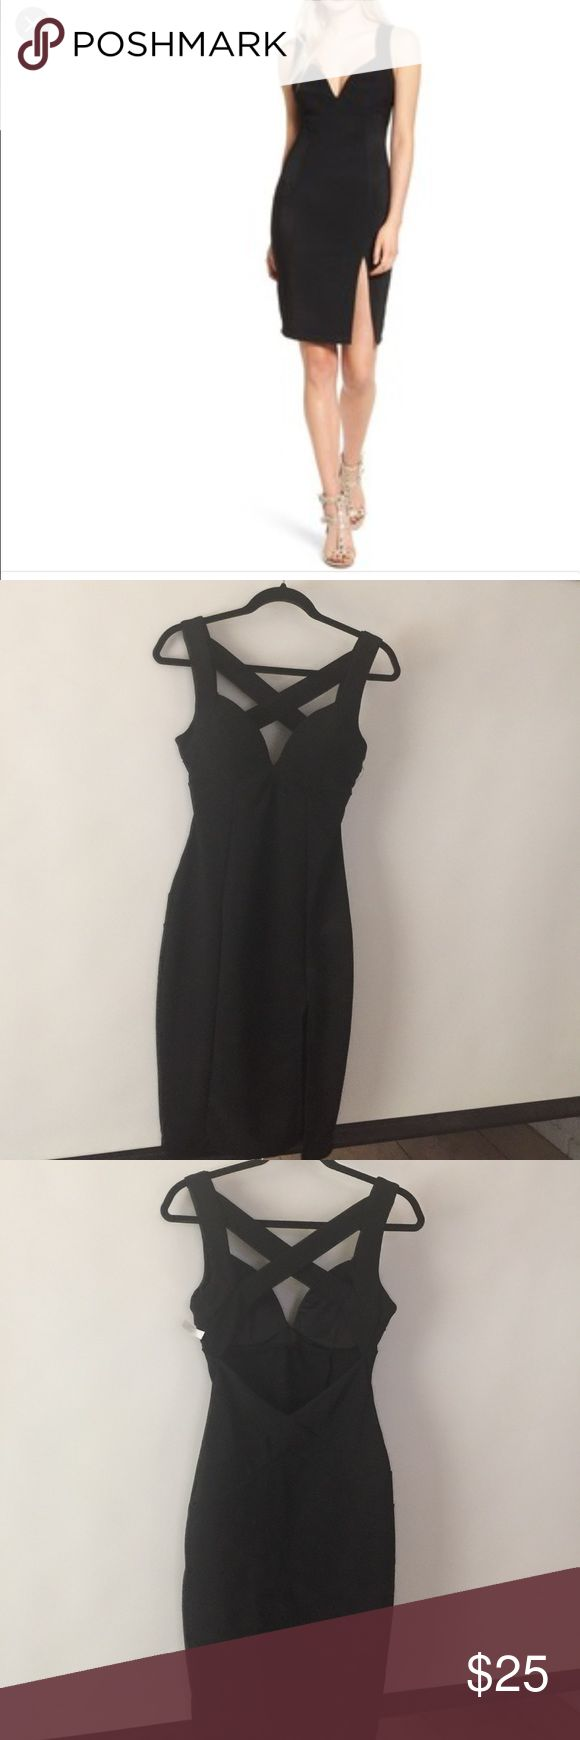 Love , Nickie, Lew. Bodycon black halter 👗 small. Show up those curves😉with this super sexy little black dress, is padded , form fitting, open back with a front slit .I haven't wear it , but I'll wash it before shipping, 'cause I noticed some deodorant marks, when I tried on, it's a pullover style. It's a gorgeous dress, but I have to downsize my black dress collection. Bought it at Nordstrom.Sorry NO TRADES OR MODELING. Please let me know if you have any questions. Thanks for looking…